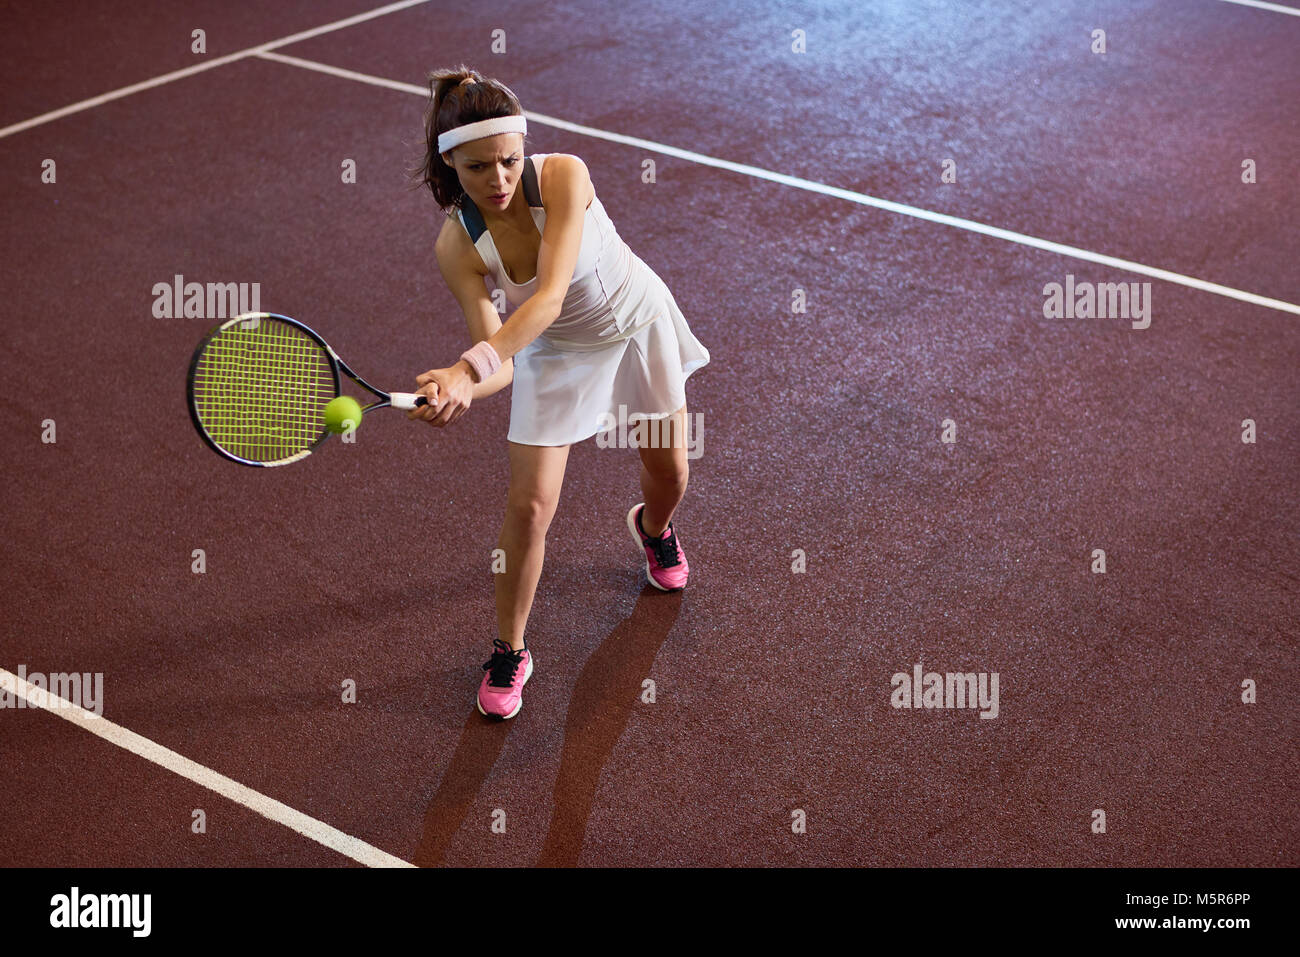 High angle full length  portrait of forceful woman playing tennis in indoor court, copy space - Stock Image